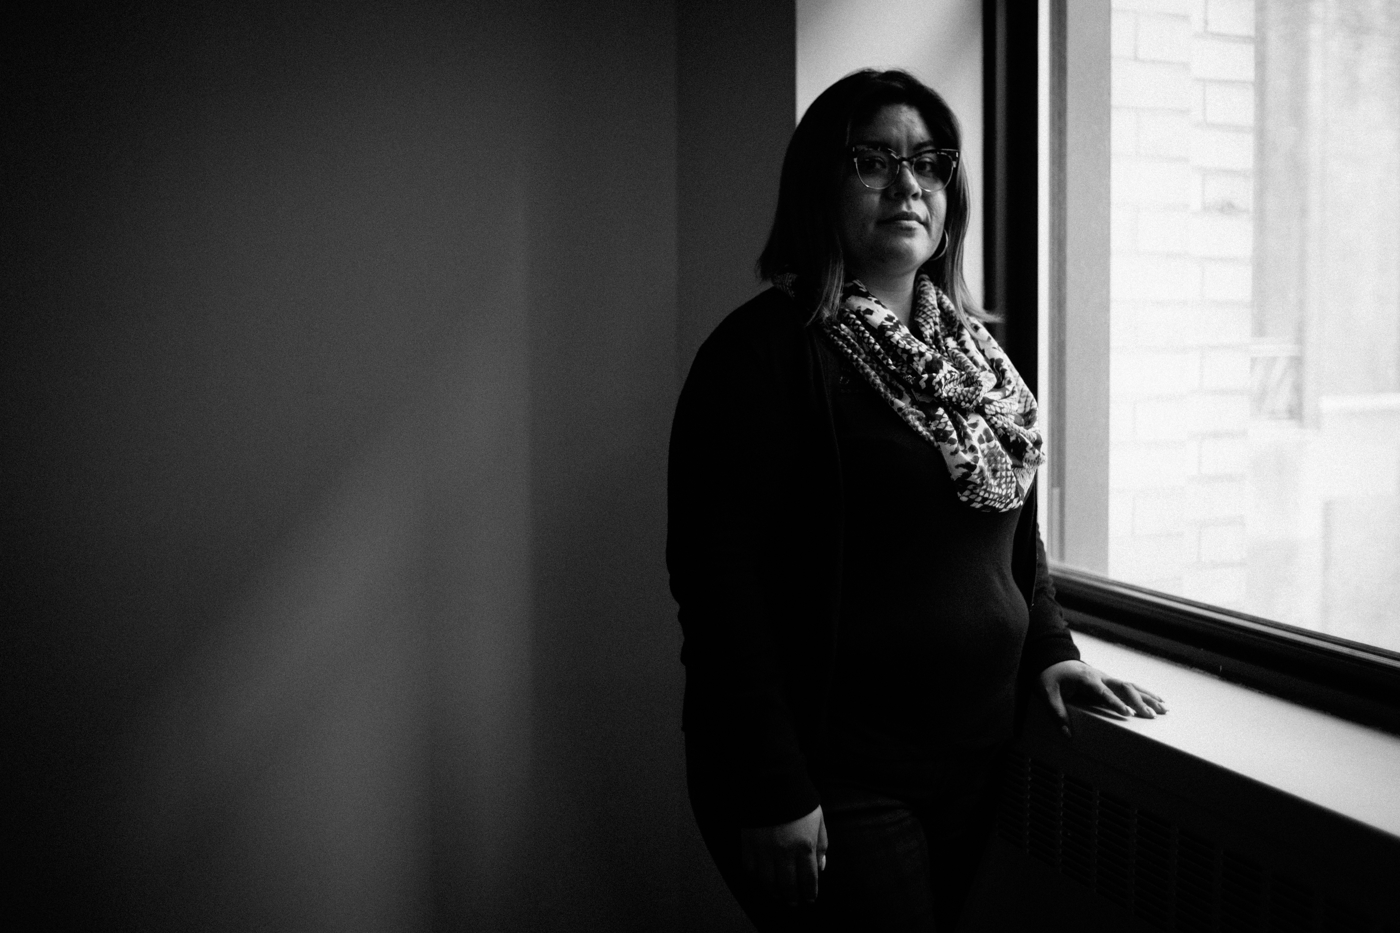 Maribelle, an undocumented immigrant from Mexico, stands for a portrait at Catholic Charities Community Services office in New York, NY on March 9, 2017. CREDIT: Mark Kauzlarich for CNN